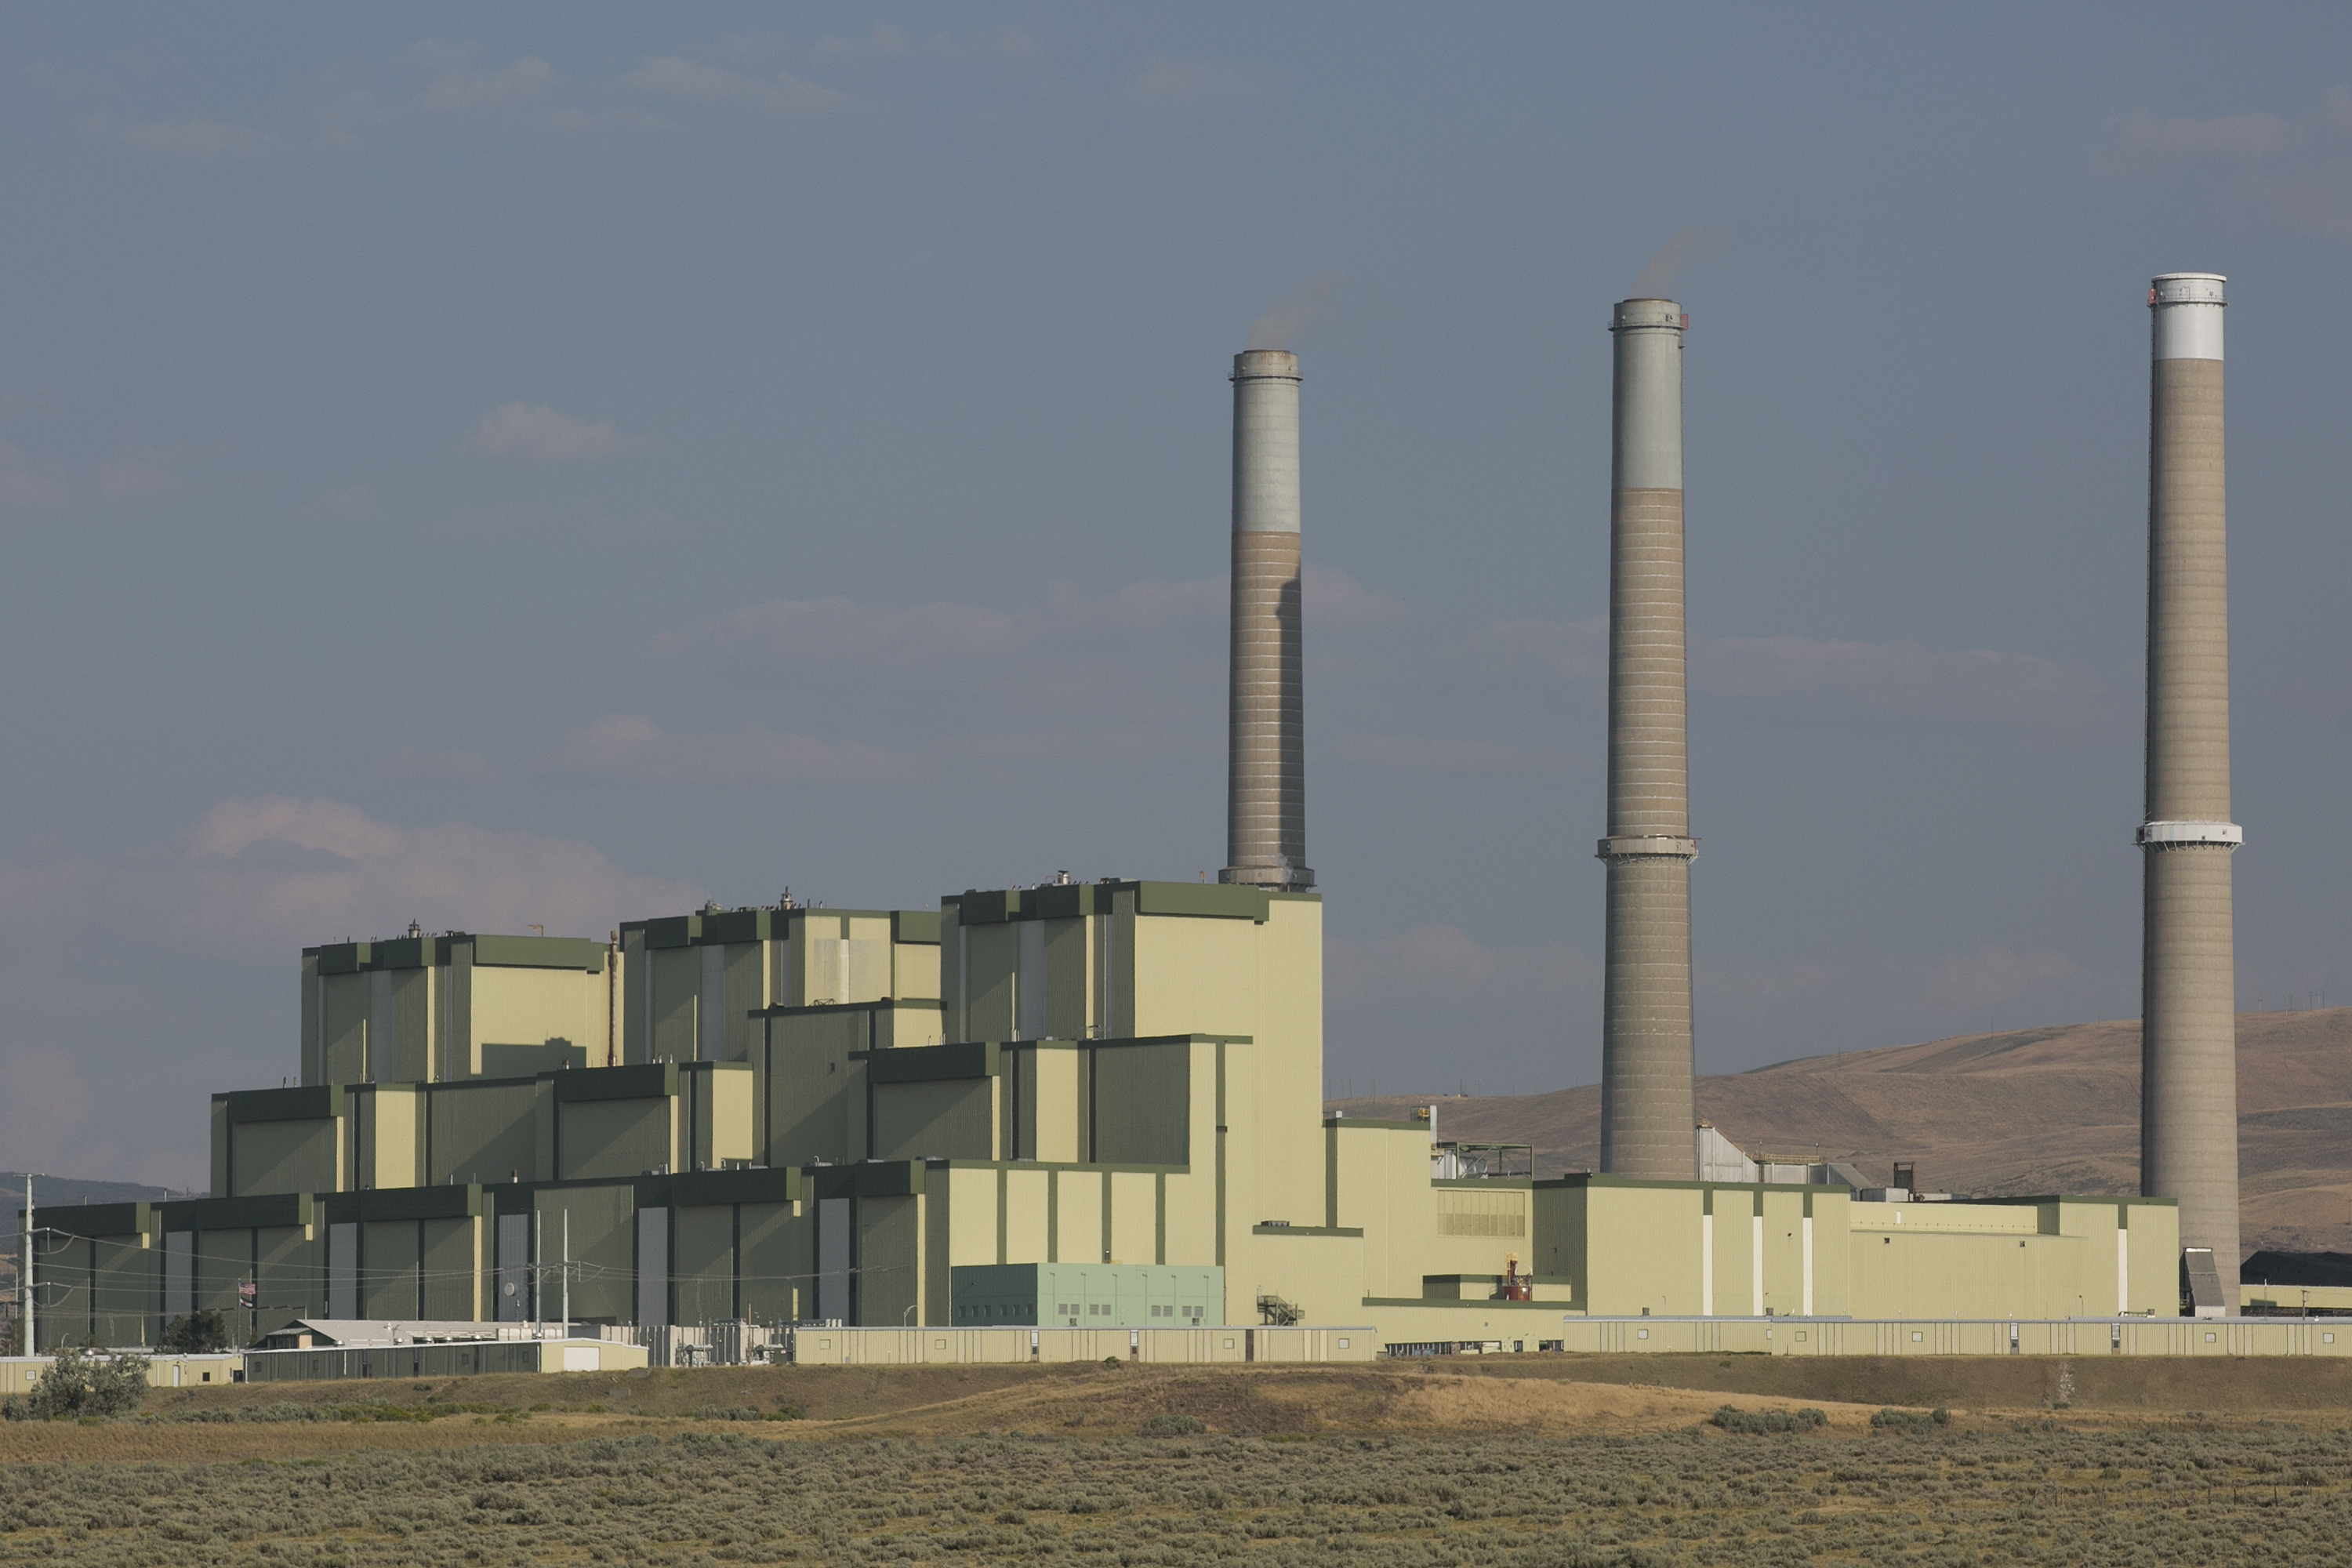 The coal-fired Craig Station power plant is operated by Tri-State Generation and Transmission Association.